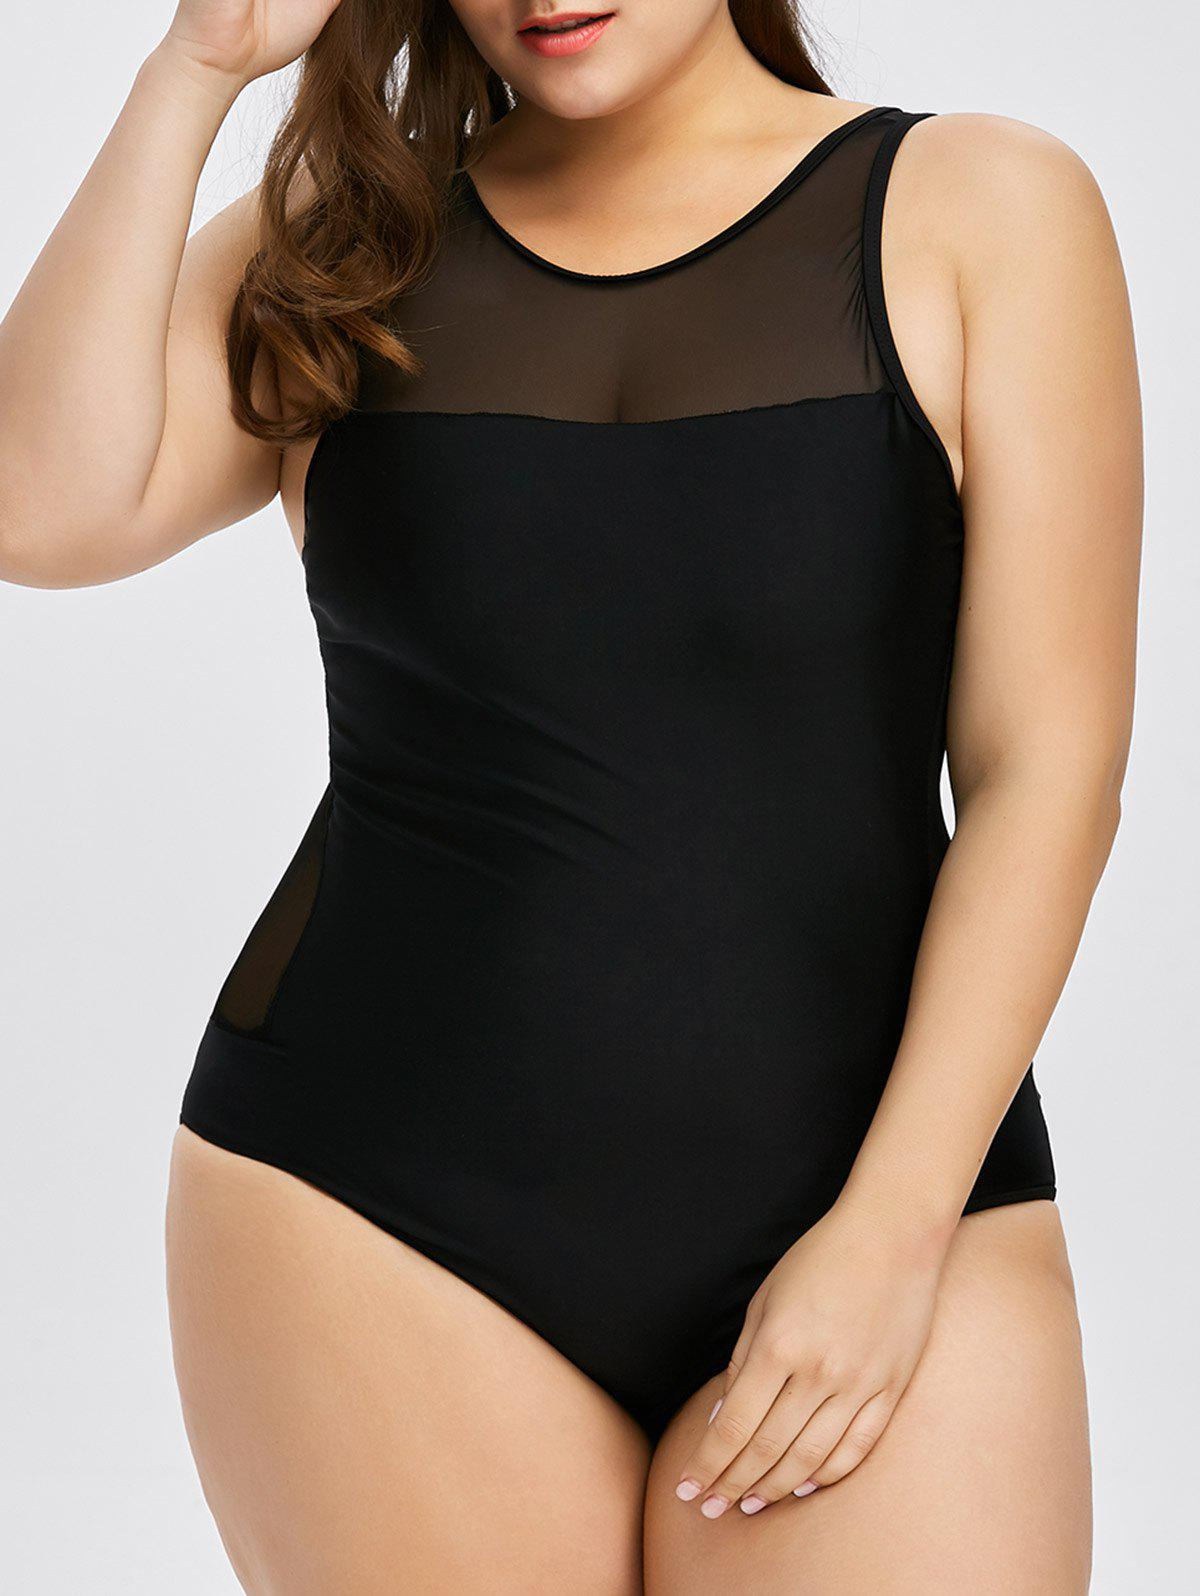 Plus Size Mesh Insert Racerback One Piece SwimwearWOMEN<br><br>Size: XL; Color: BLACK; Gender: For Women; Swimwear Type: One Piece; Material: Polyester; Bra Style: One-piece; Support Type: Wire Free; Pattern Type: Solid; Waist: Natural; Elasticity: Elastic; Weight: 0.4100kg; Package Contents: 1 x Swimwear;